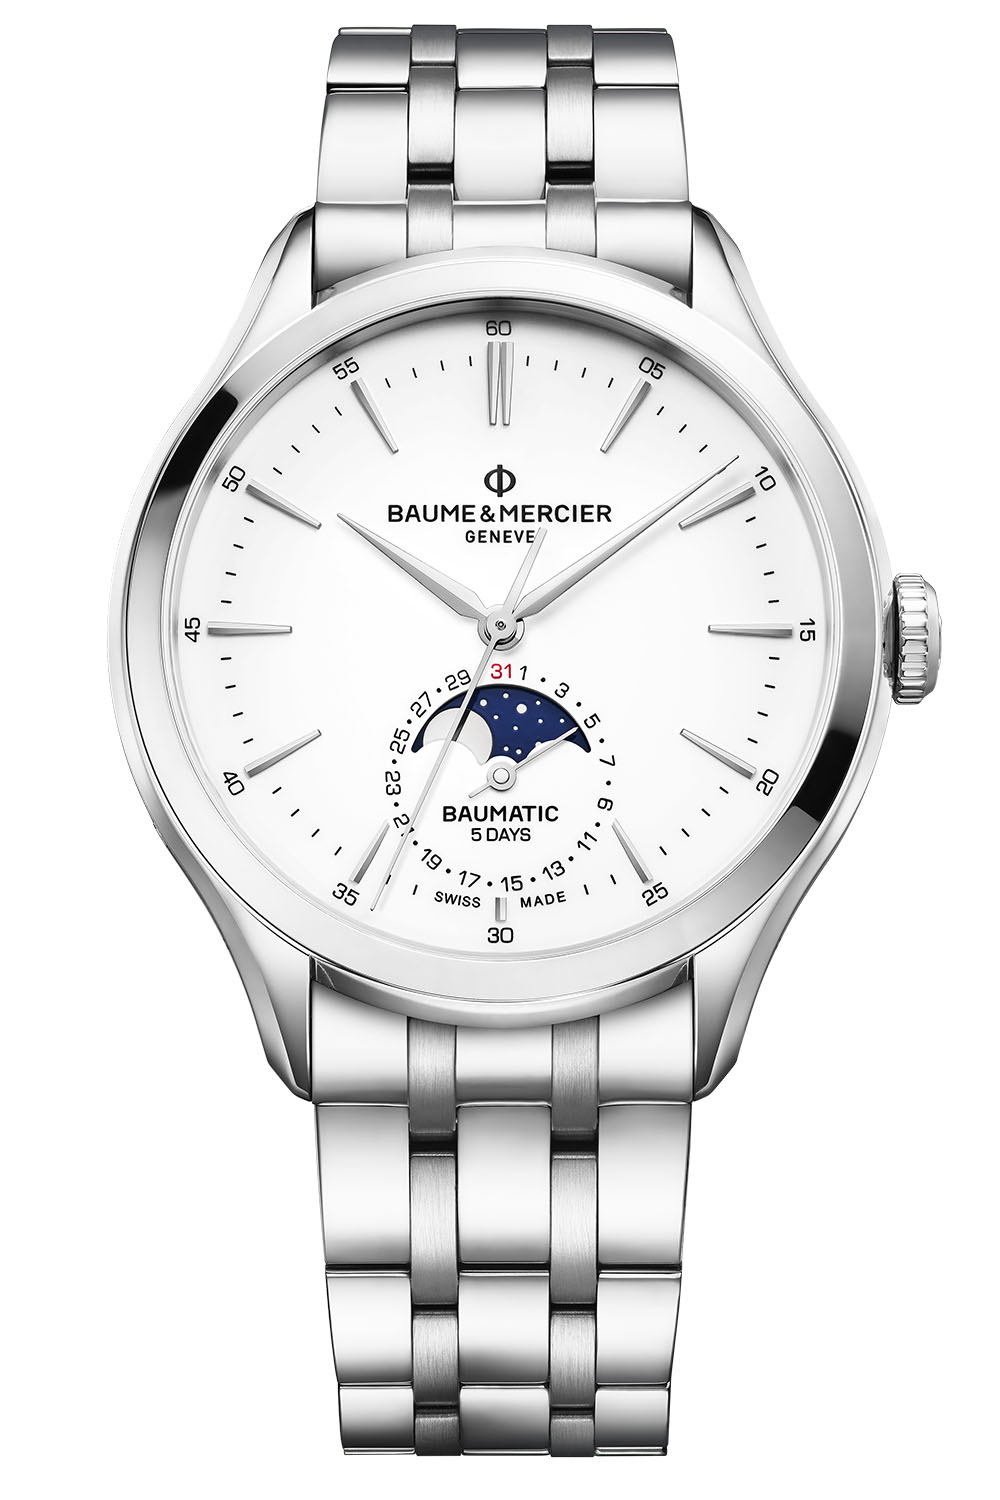 2020 Baume Mercier Baumatic moonphase date - 2